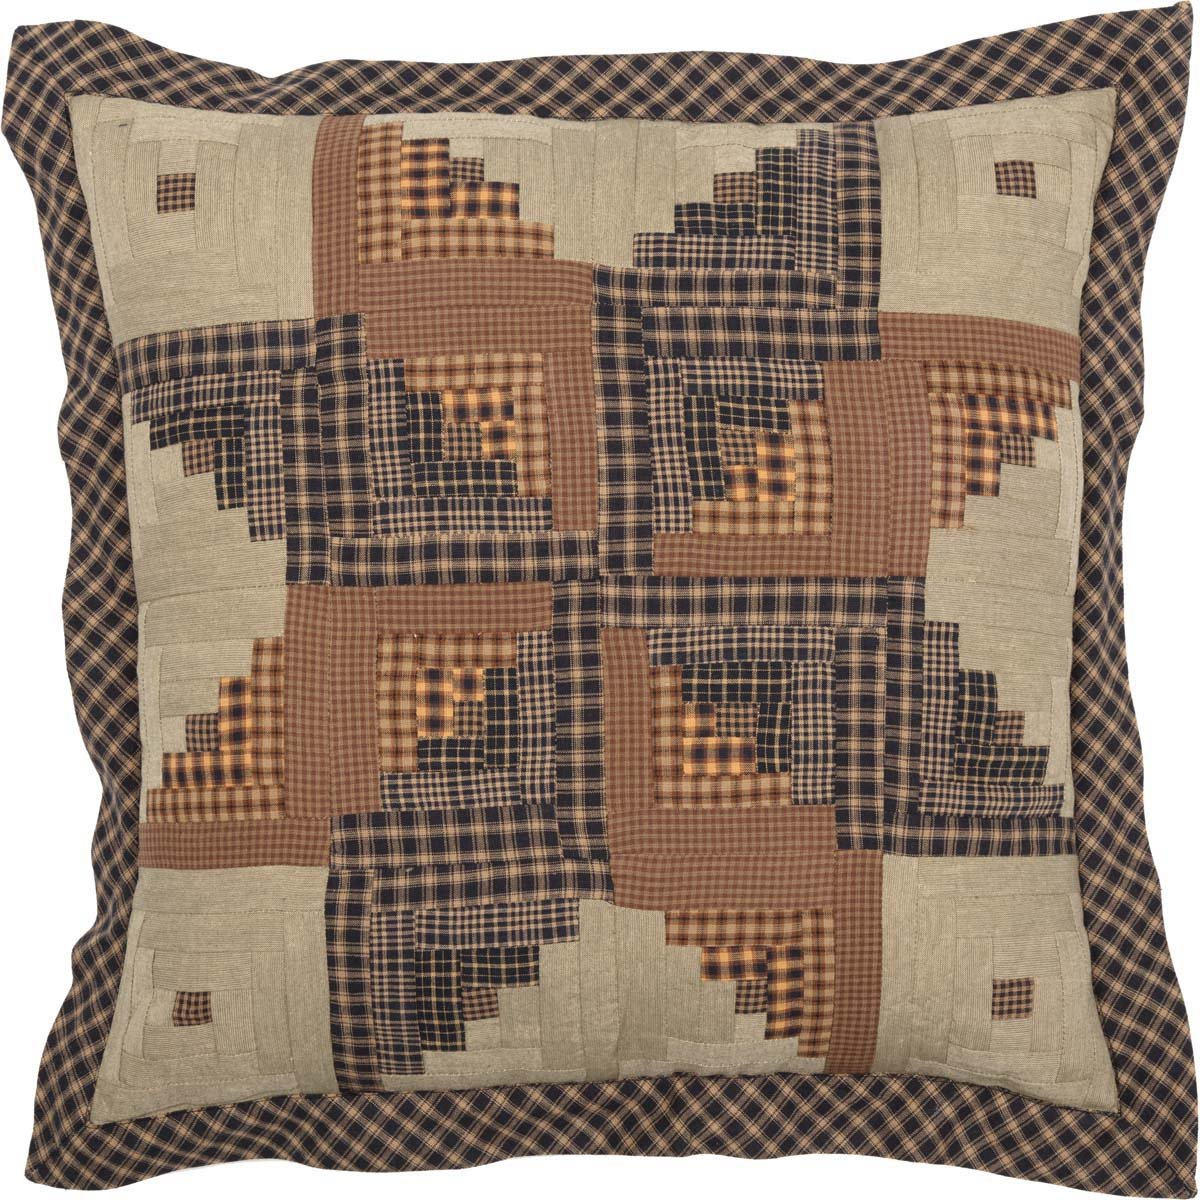 Novak Patchwork Pillow 20x20